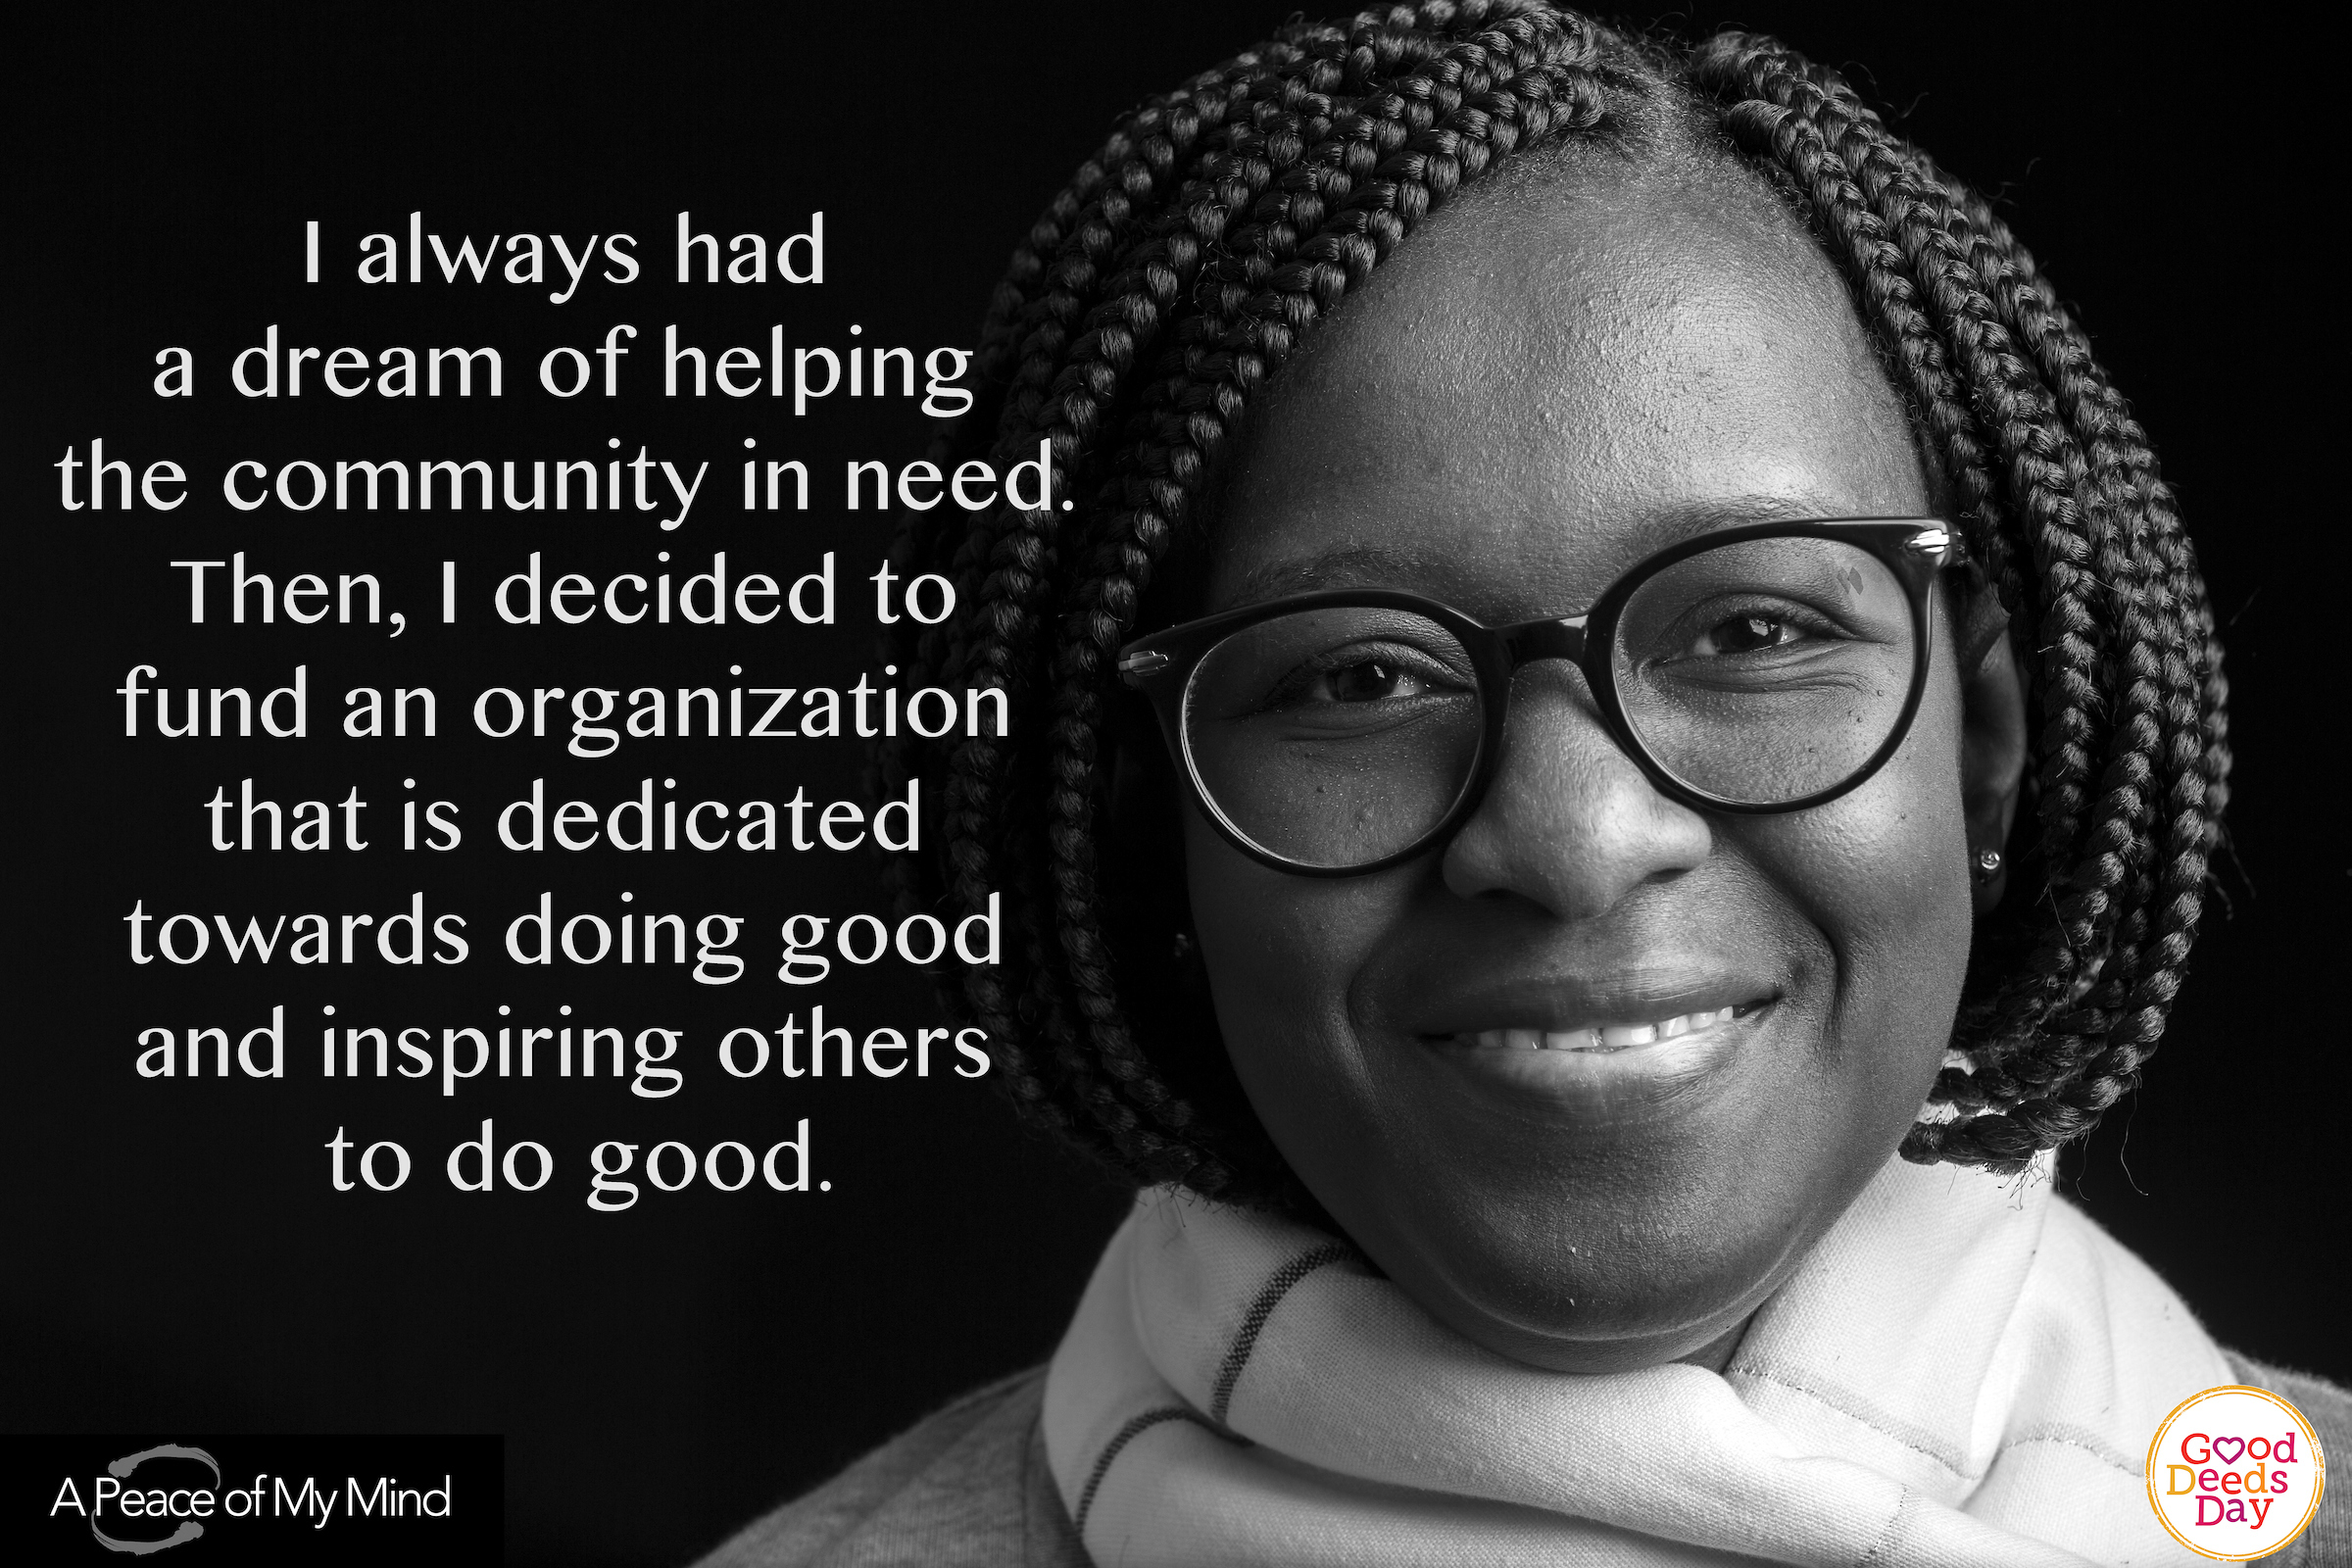 I always had a dream of helping the community in need. Then, I decided to fund an organization the is dedicated toward doing good and inspiring others to do good.